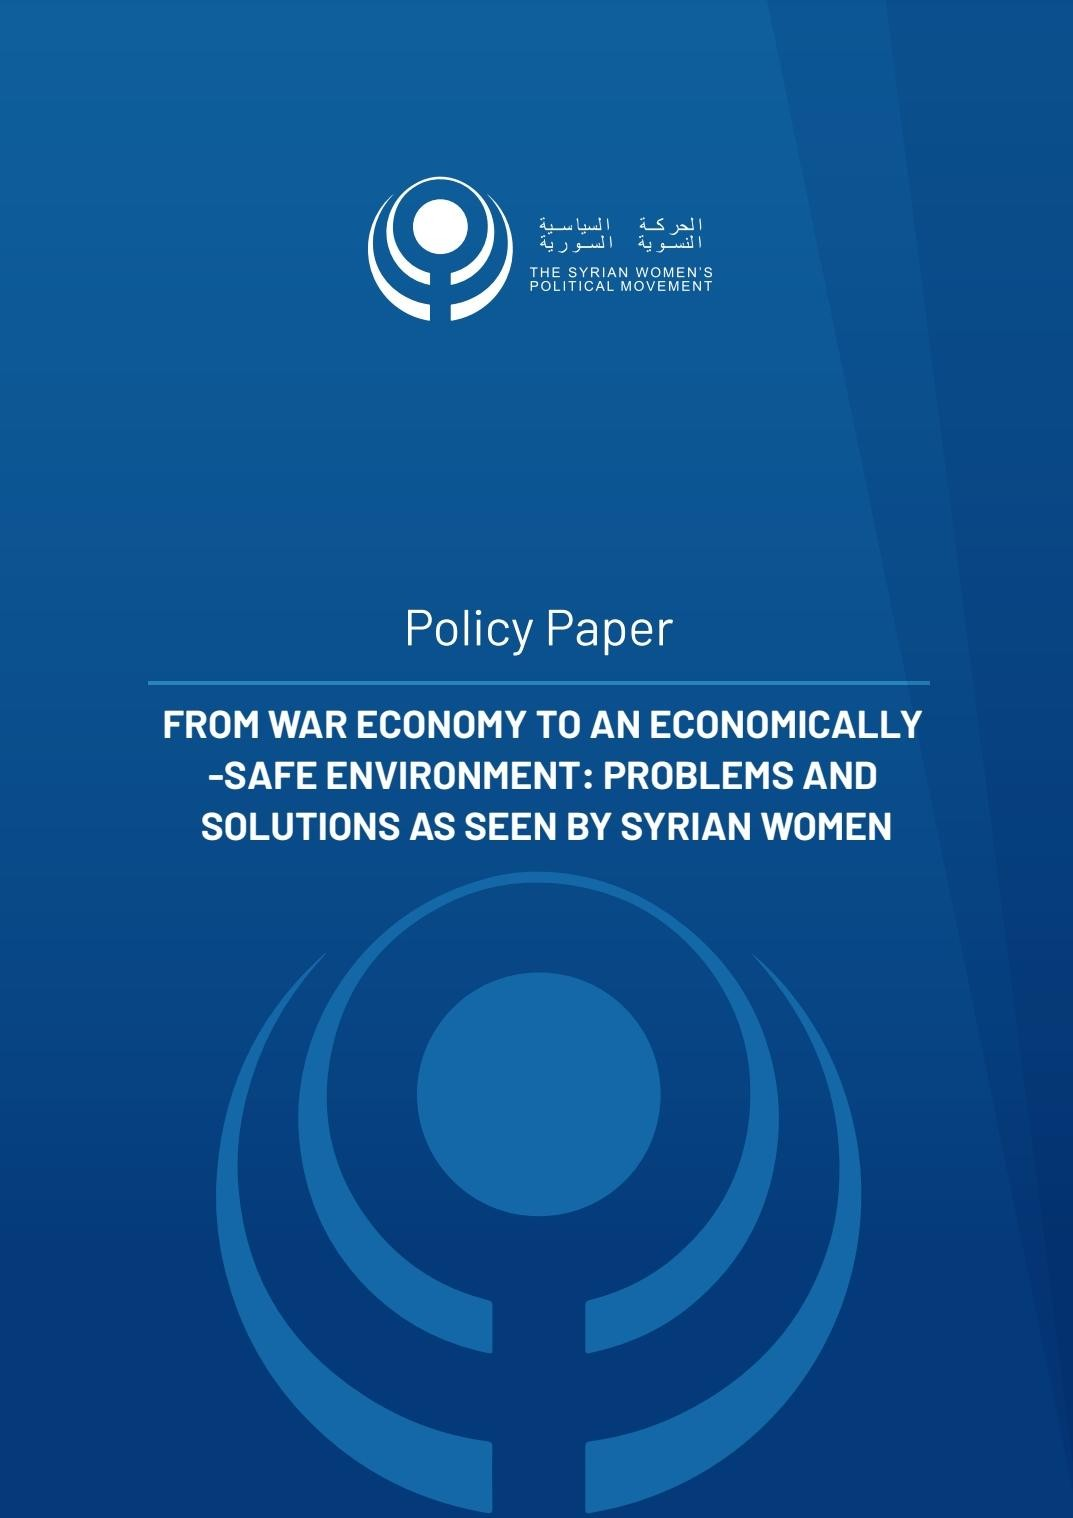 Policy Paper – FROM WAR ECONOMY TO AN ECONOMICALLY -SAFE ENVIRONMENT: PROBLEMS AND SOLUTIONS AS SEEN BY SYRIAN WOMEN